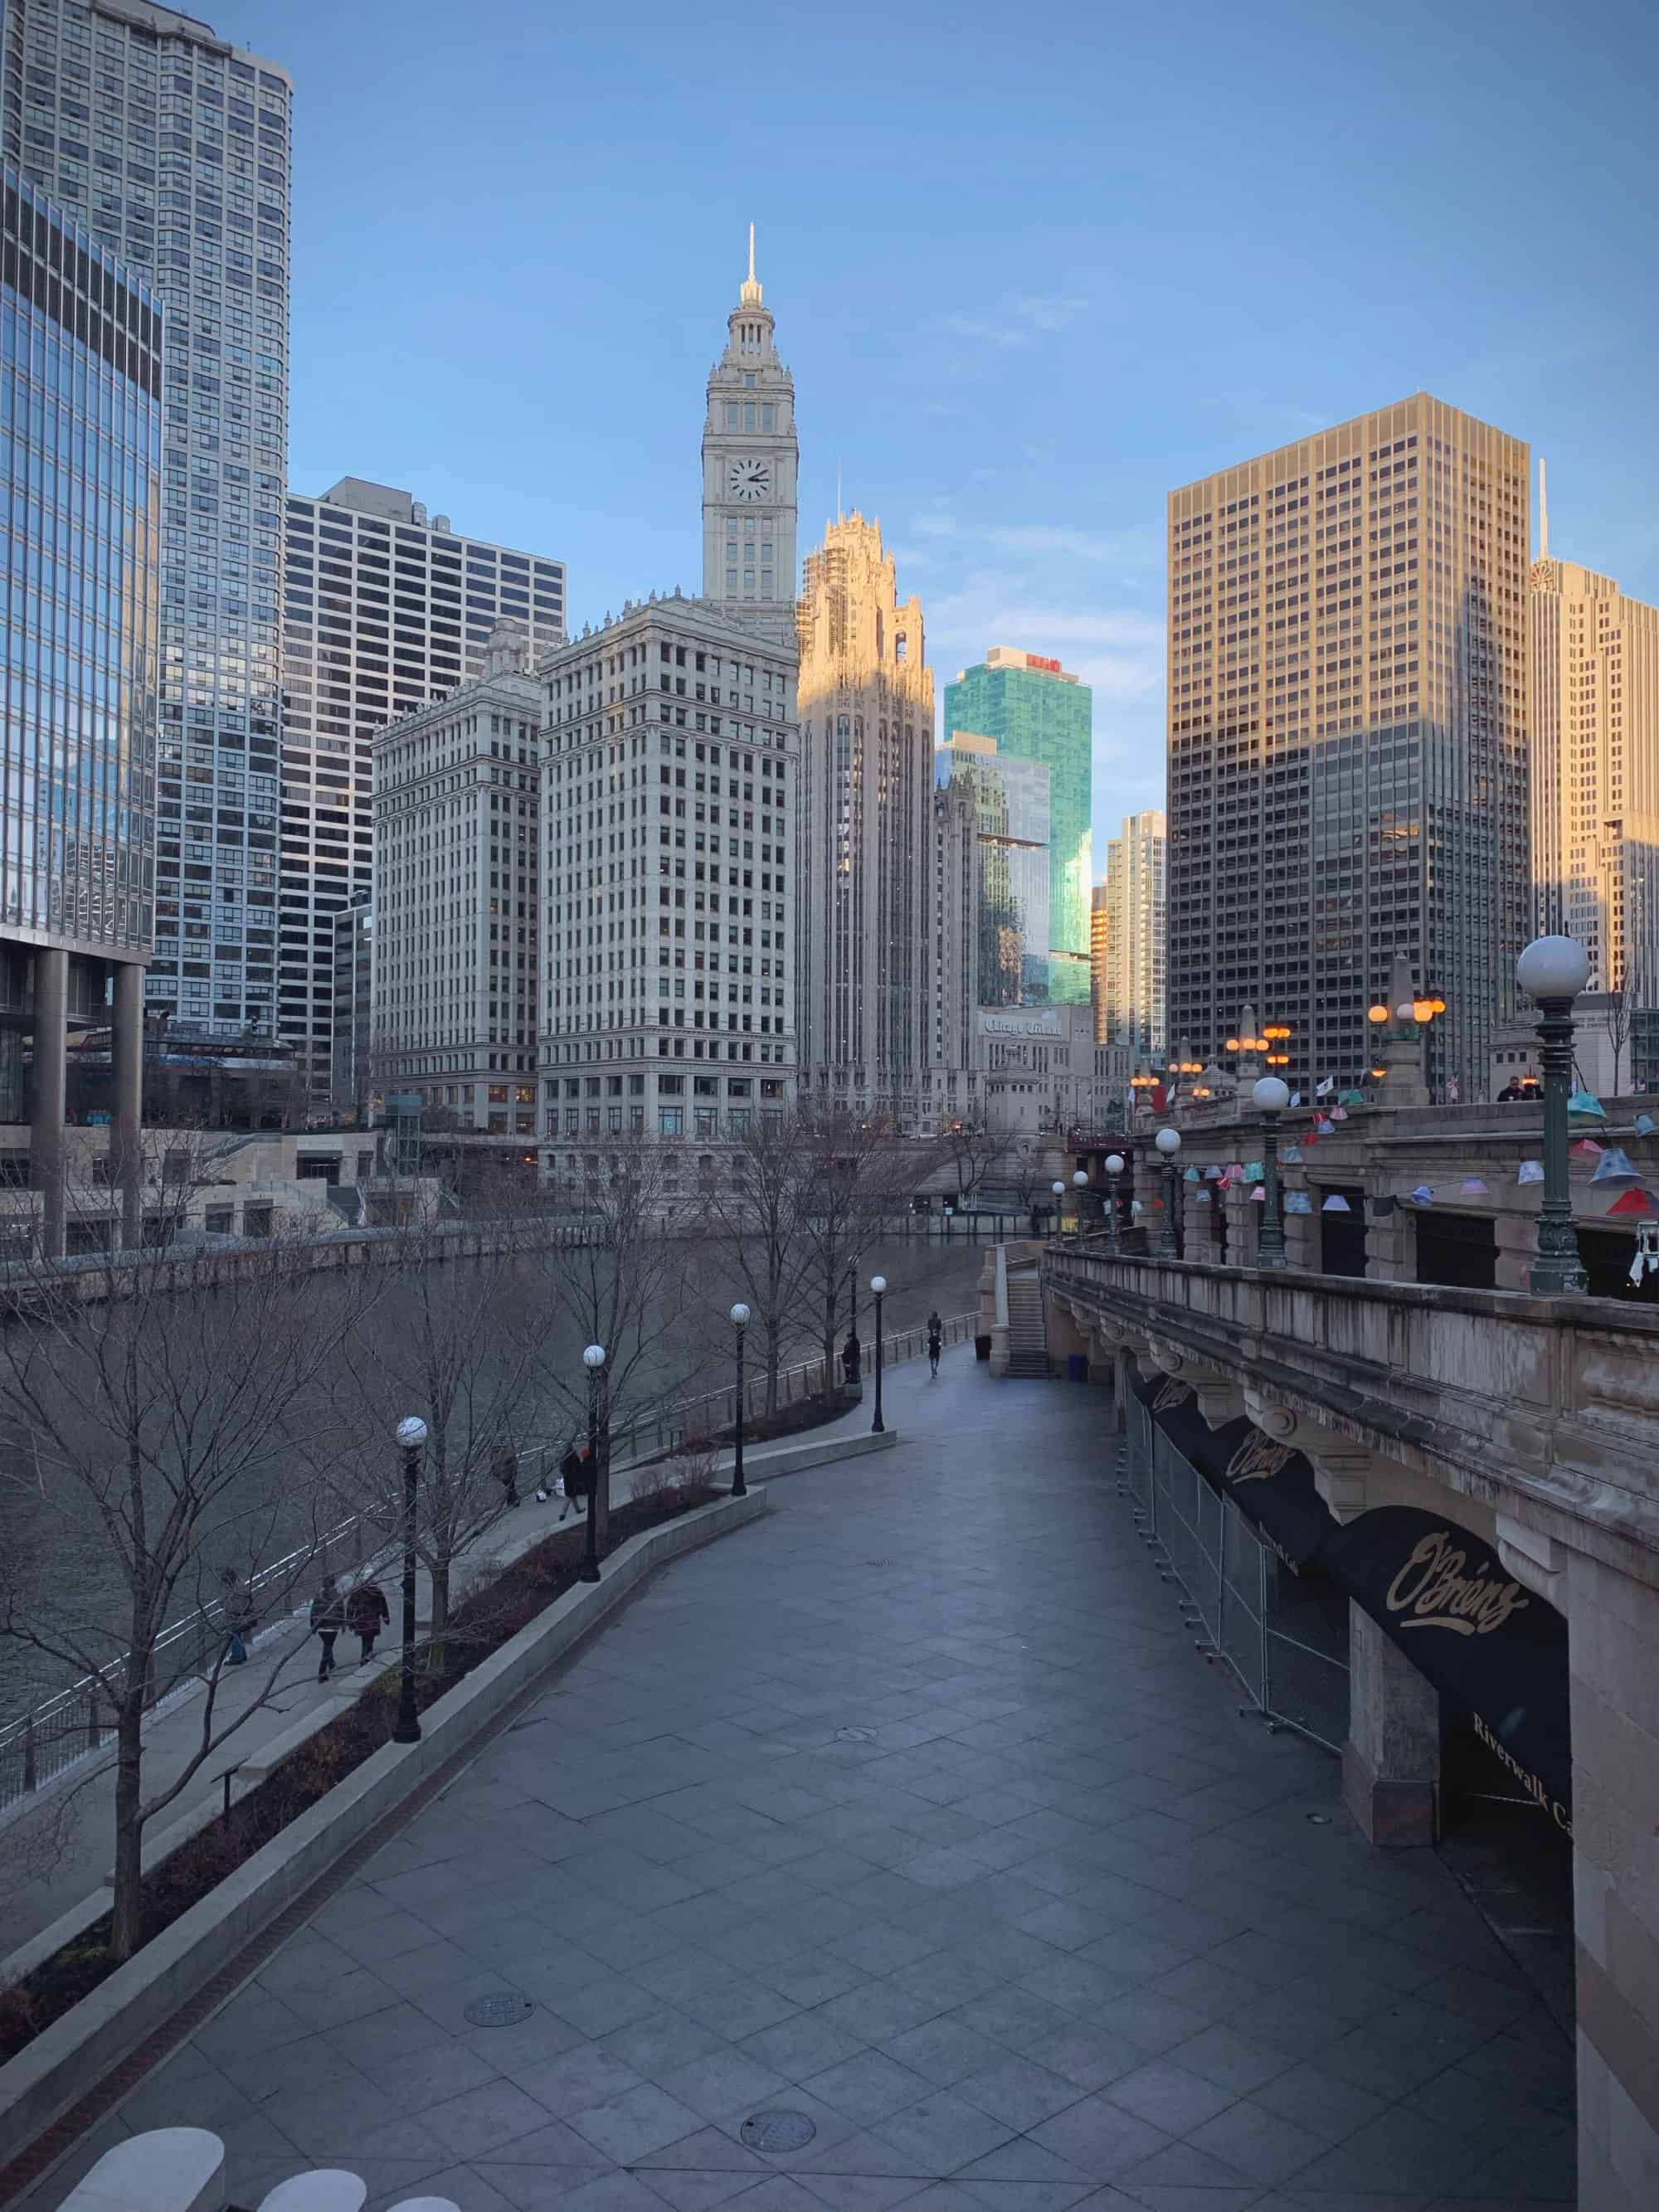 Riverwalk - Chicago